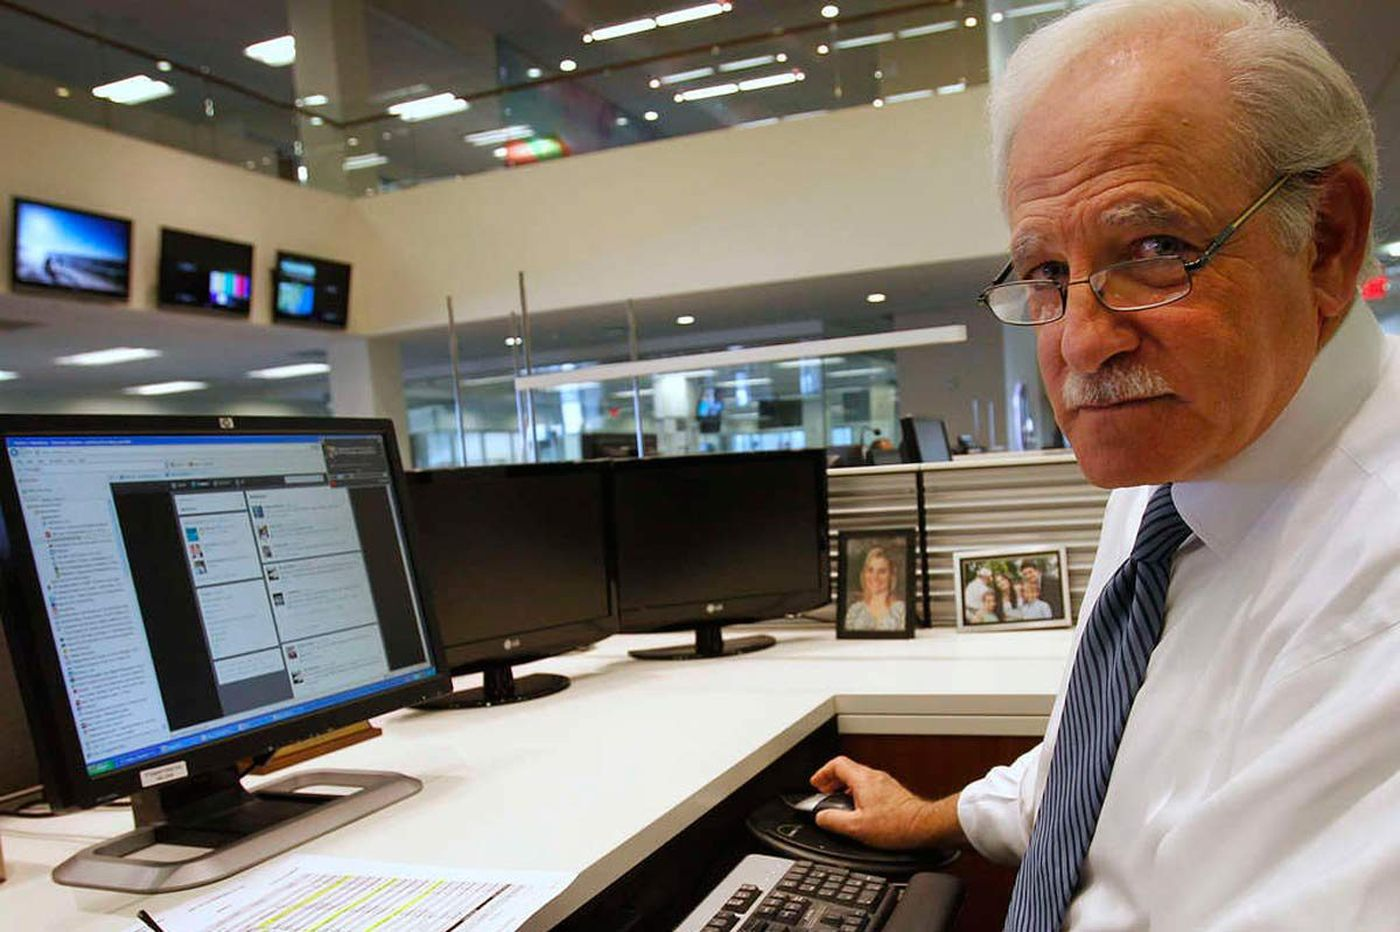 'Action News' anchor Jim Gardner still a ratings force for 6ABC